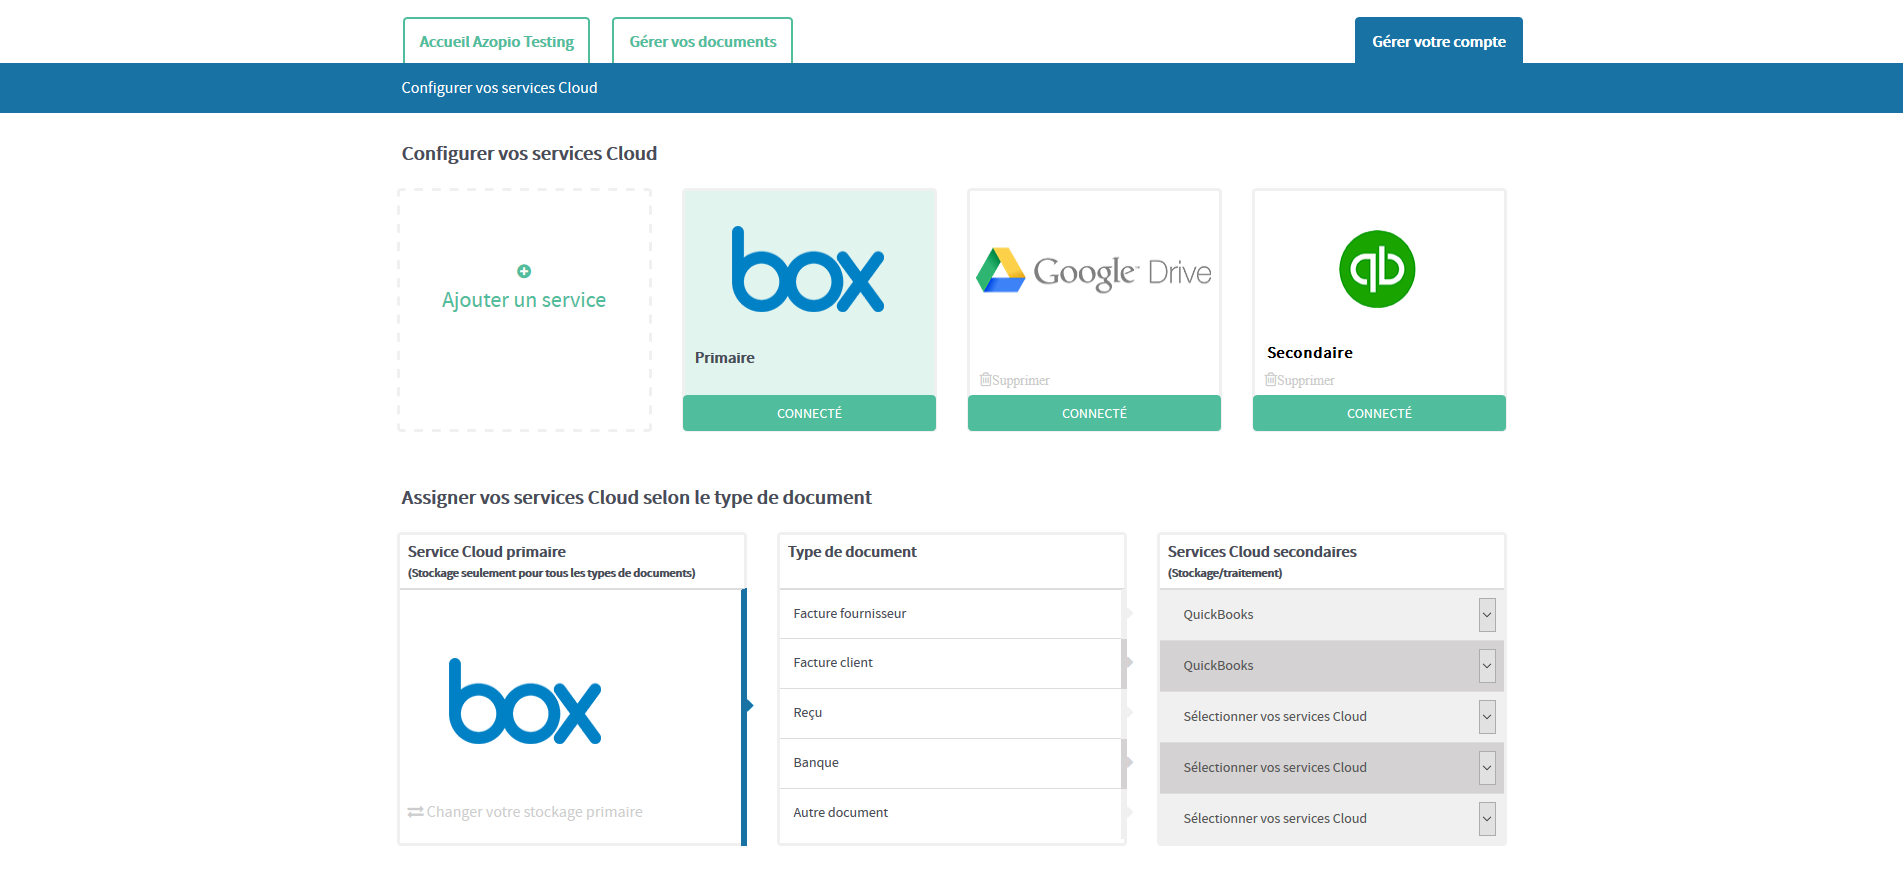 The user can configure their cloud storage services (such as Dropbox, Google Drive, Box and onedrive) and its online accounting software (QuickBooks and Xero)